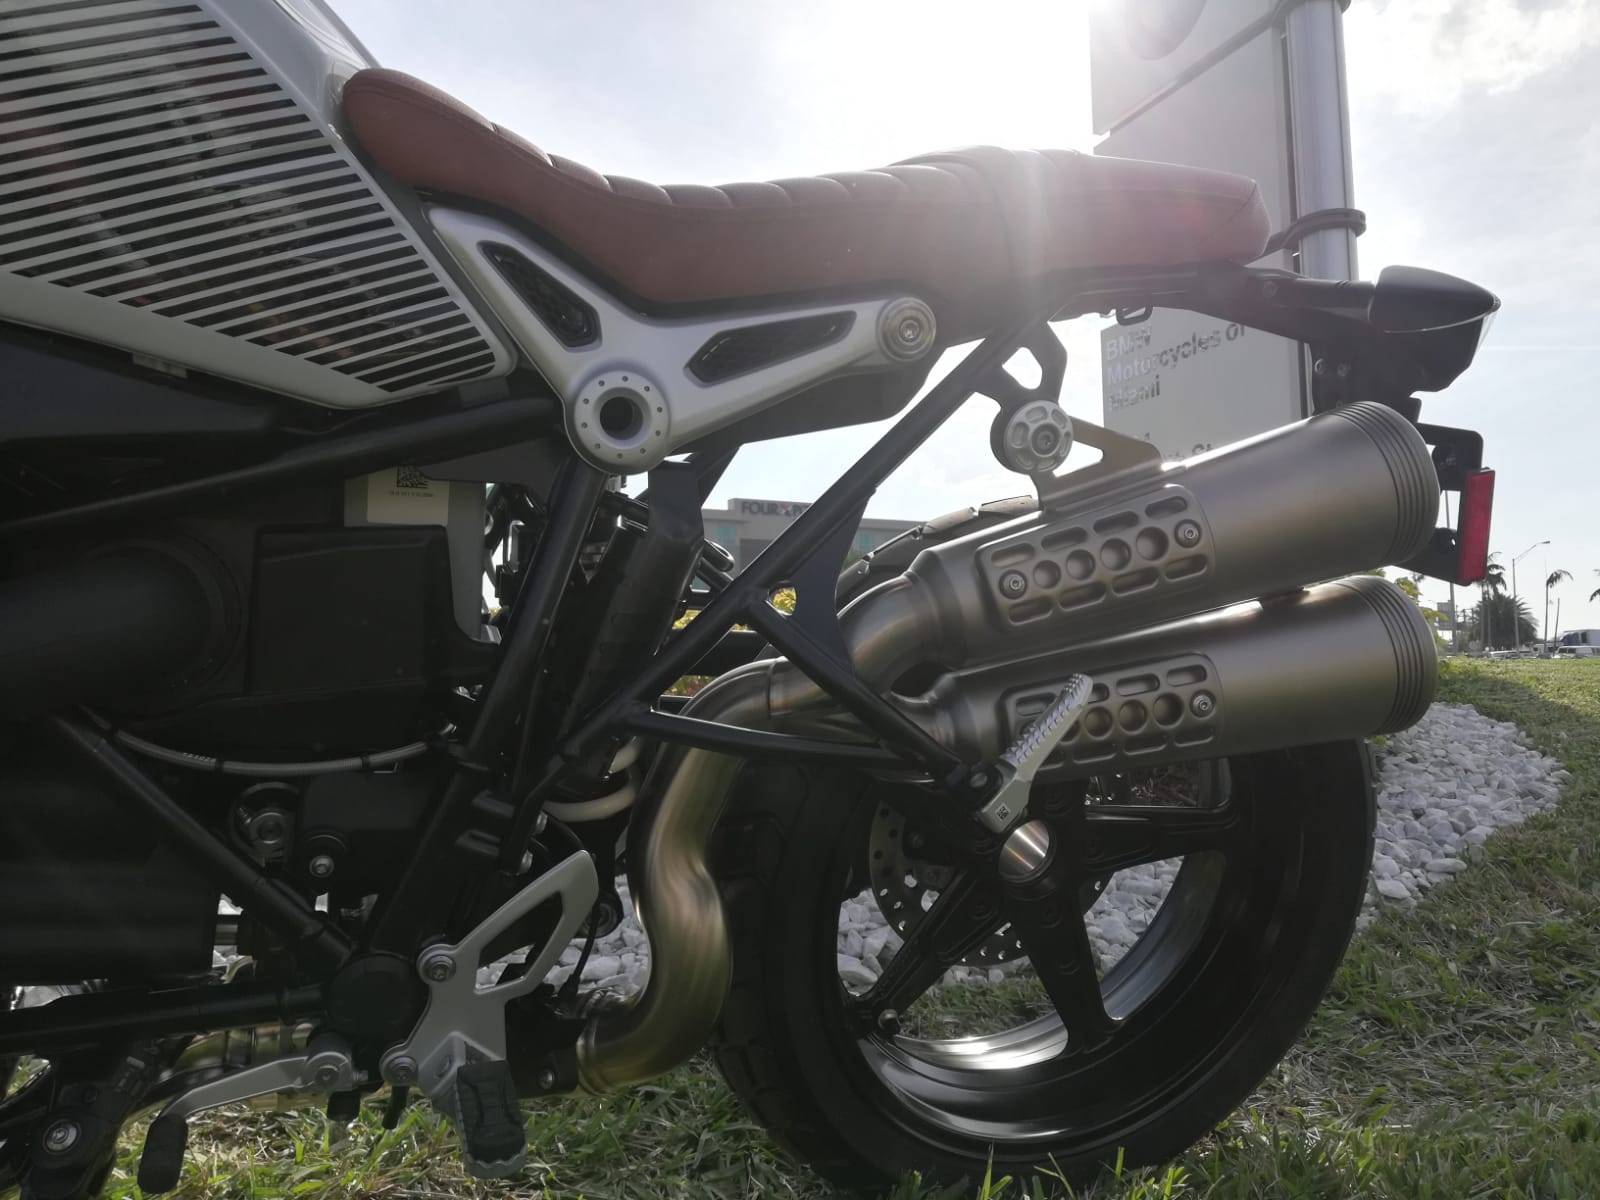 New 2019 BMW R nine T Scrambler for sale, BMW Scrambler for sale, BMW Motorcycle Scrambler, Scrambler, BMW Motorcycles of Miami, Motorcycles of Miami, Motorcycles Miami, New Motorcycles, Used Motorcycles, pre-owned. #BMWMotorcyclesOfMiami #MotorcyclesOfMiami. - Photo 24